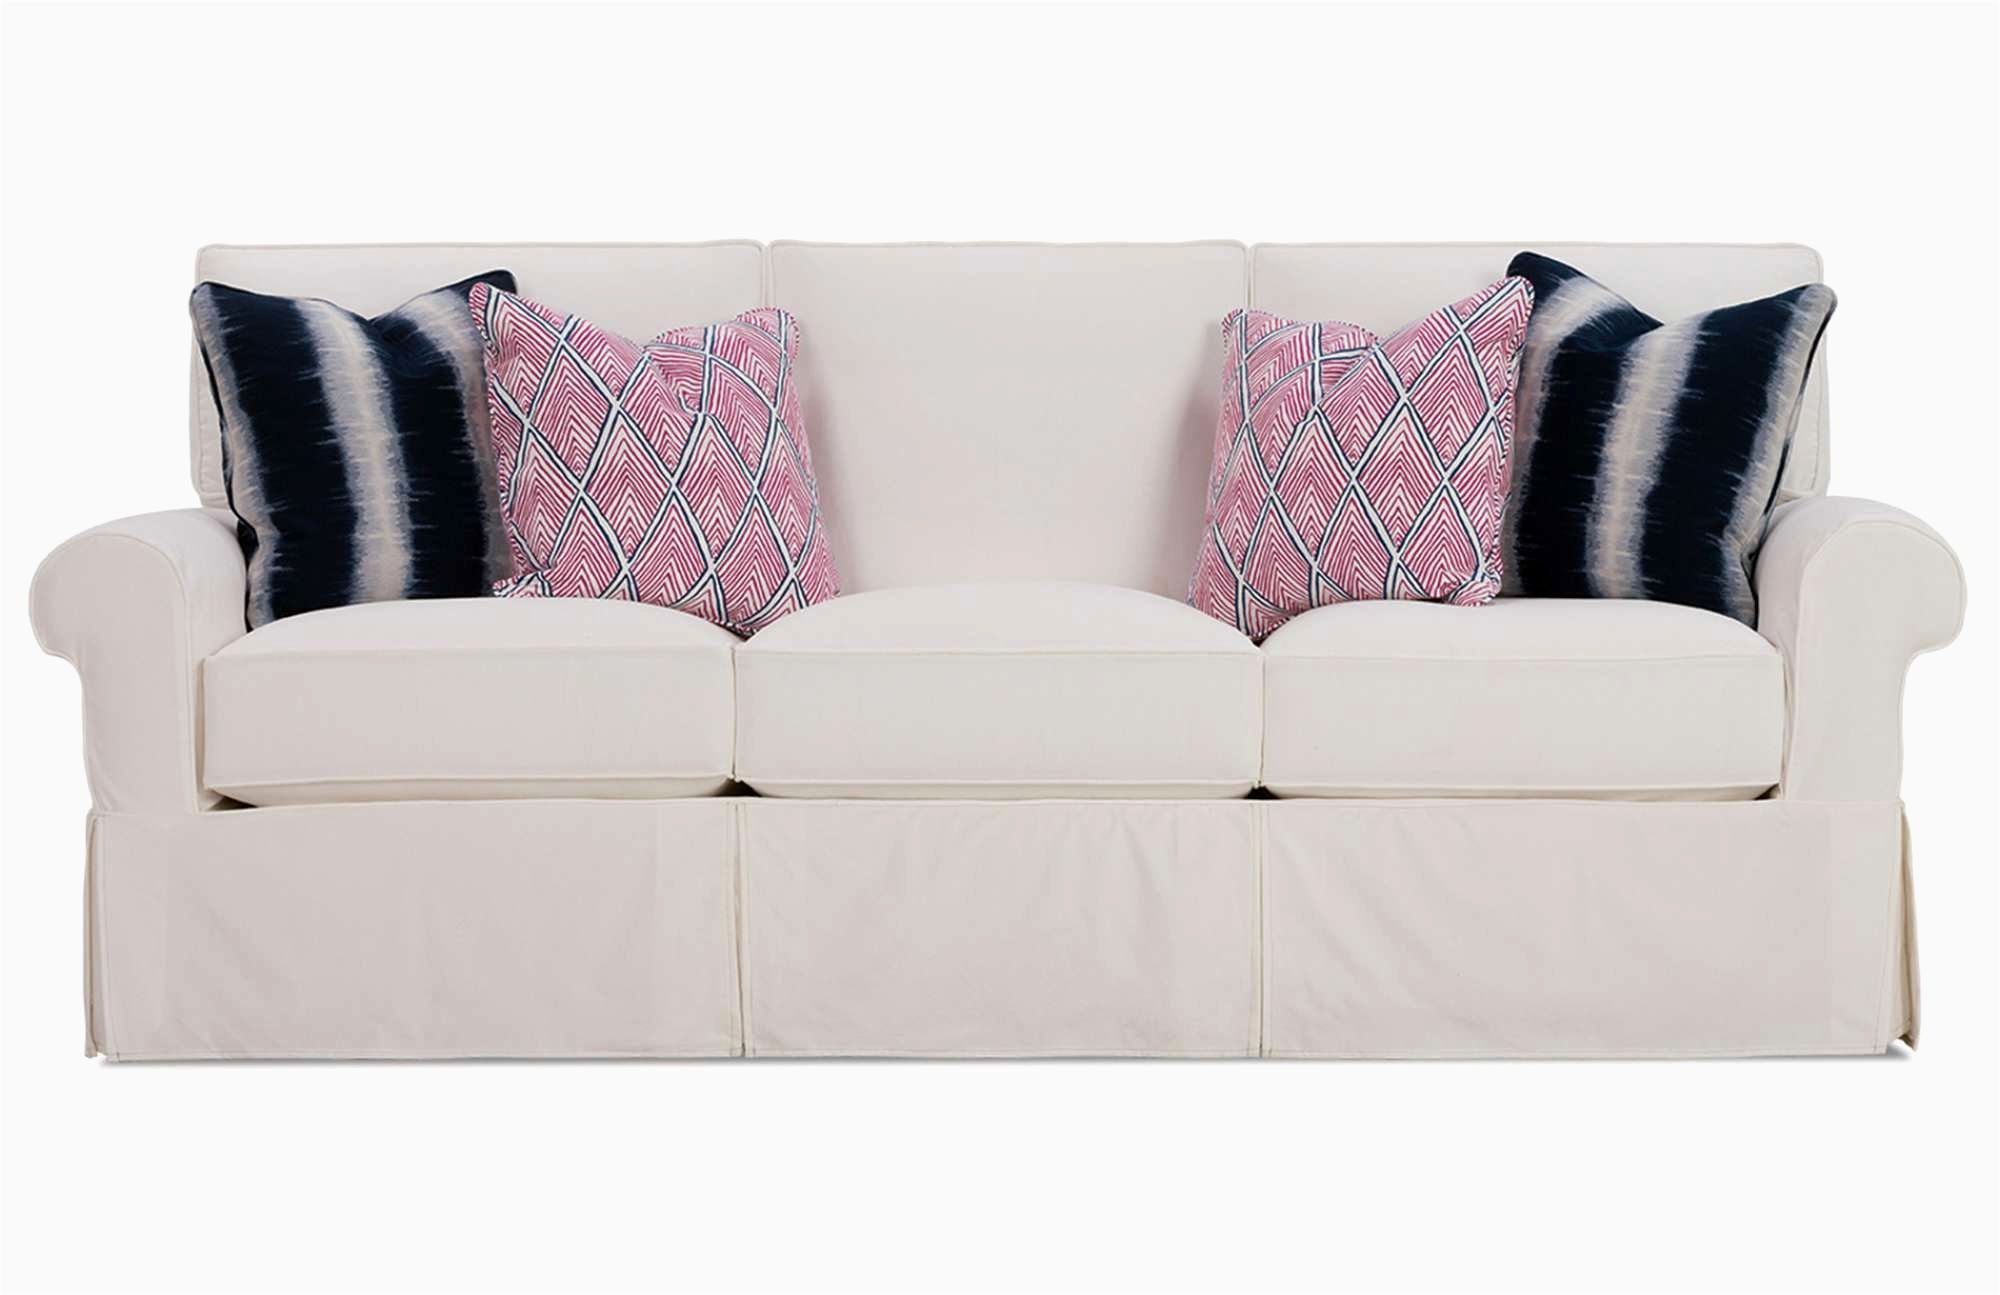 luxury sure fit slipcovers for sofas online-Excellent Sure Fit Slipcovers for sofas Inspiration